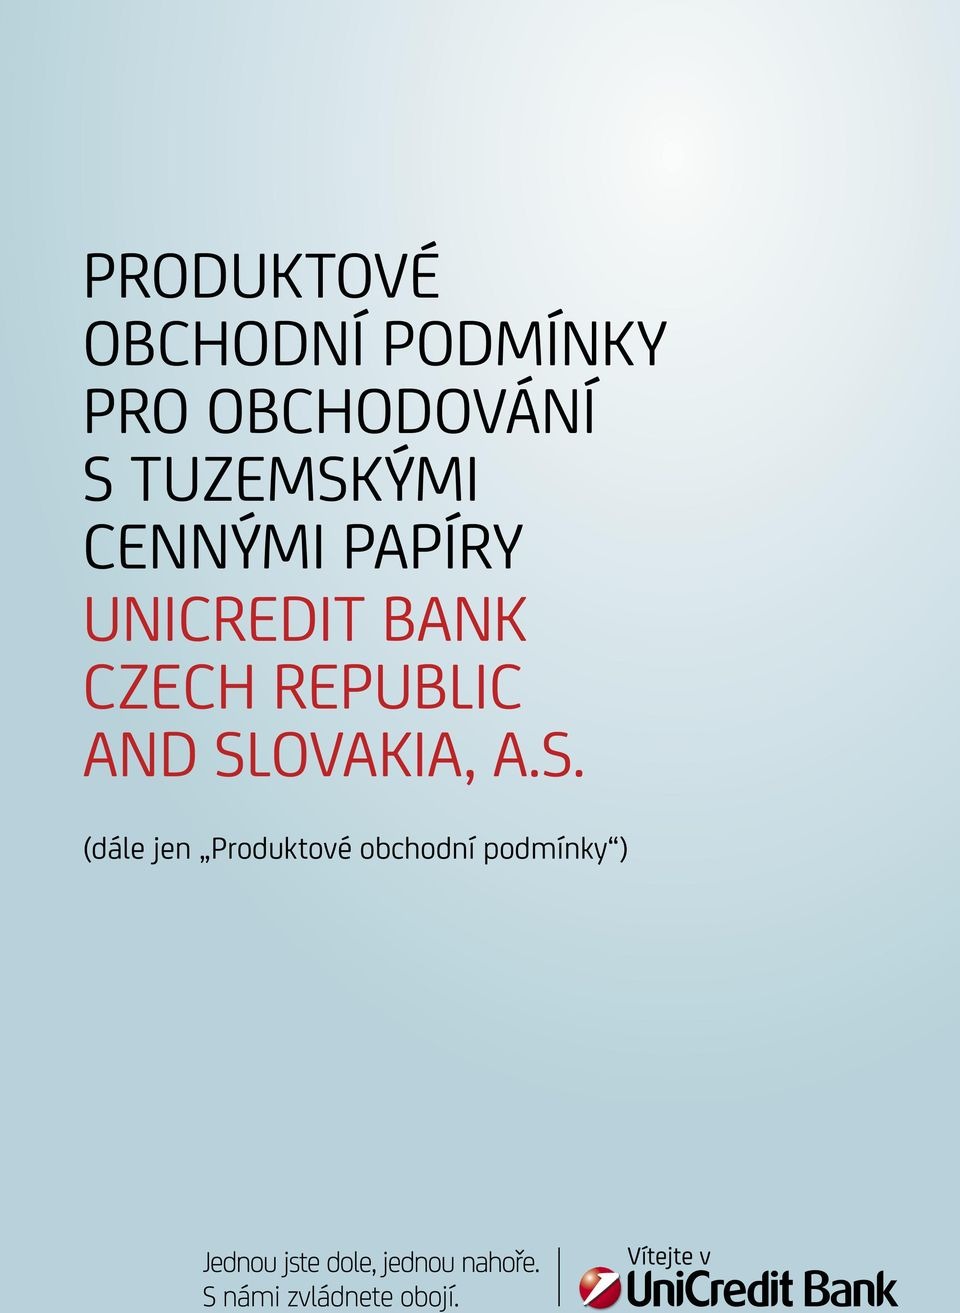 UNICREDIT BANK CZECH REPUBLIC AND